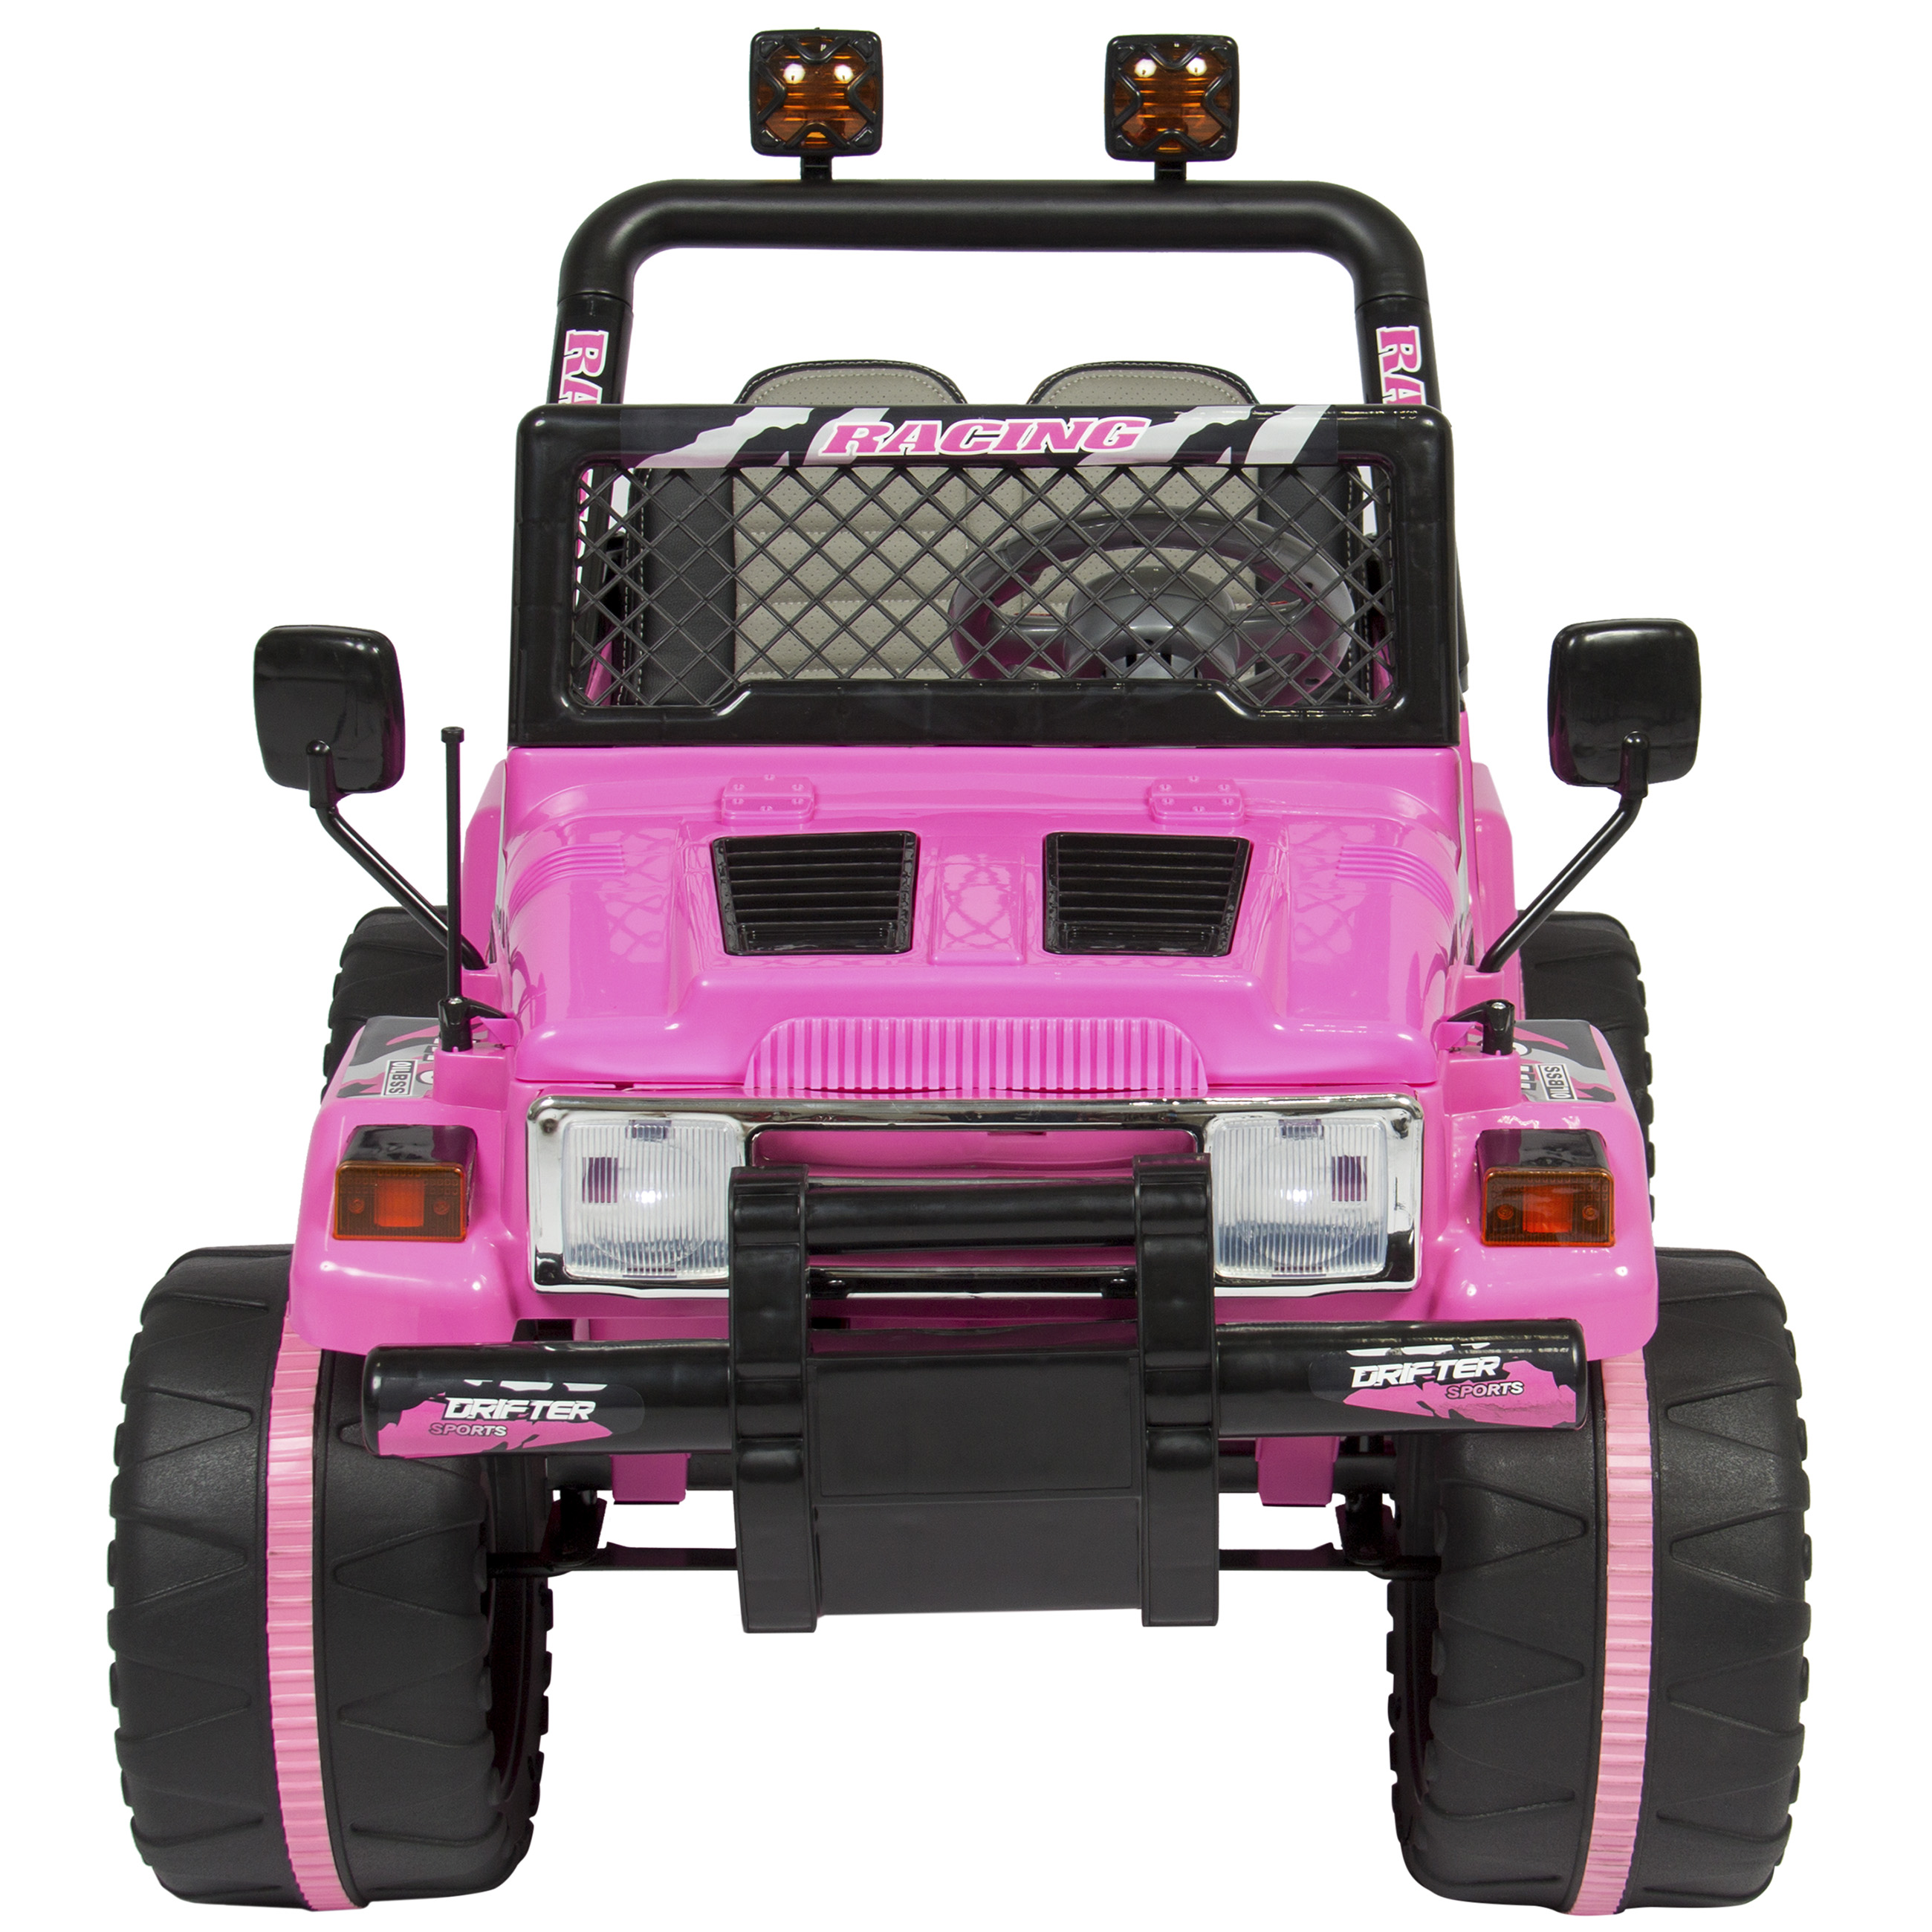 Best Choice Products 12v Ride On Car Truck W Remote Control Jeep Yj Wiring Harness Ebay Leather Seat Lights 2 Speeds Pink